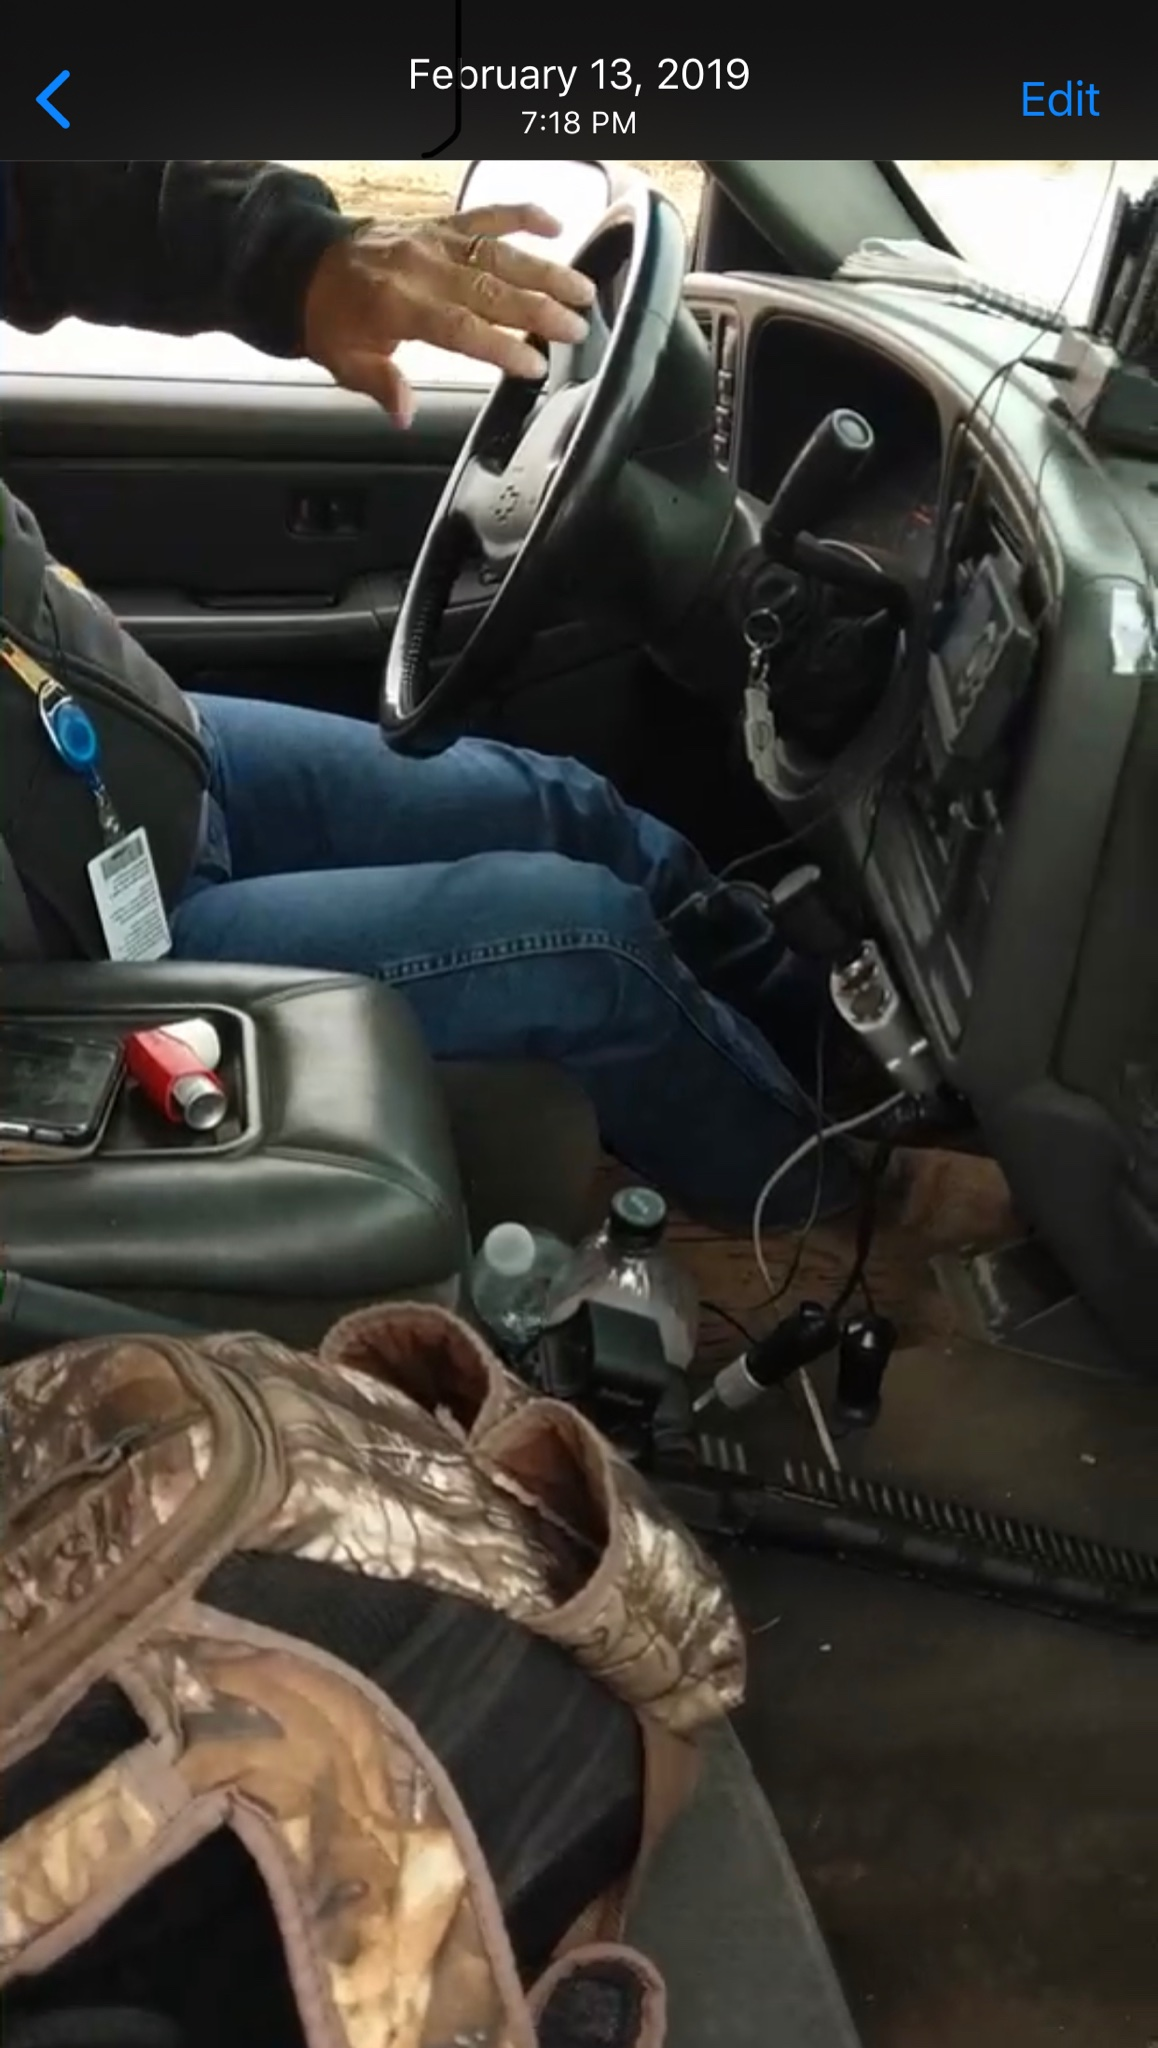 An oilfield security guard with a chambered 5.56 rifle in his company vehicle's front seat